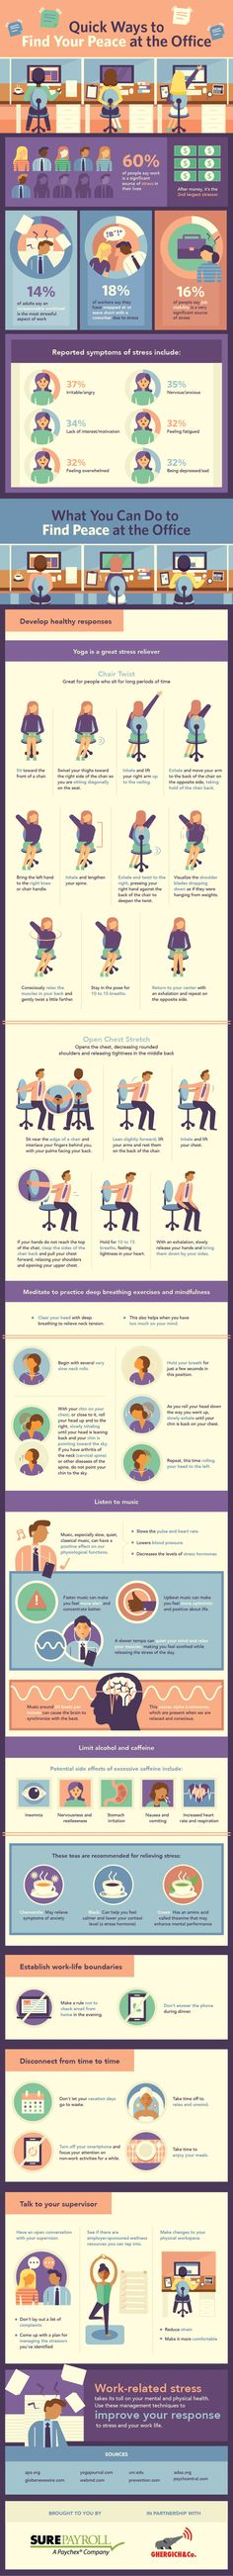 Is Your Work Colleague Winding You Up? Here's Some Quick Ways to Keep Your Cool at the Office. #Infographic #office #health #tips #fitness